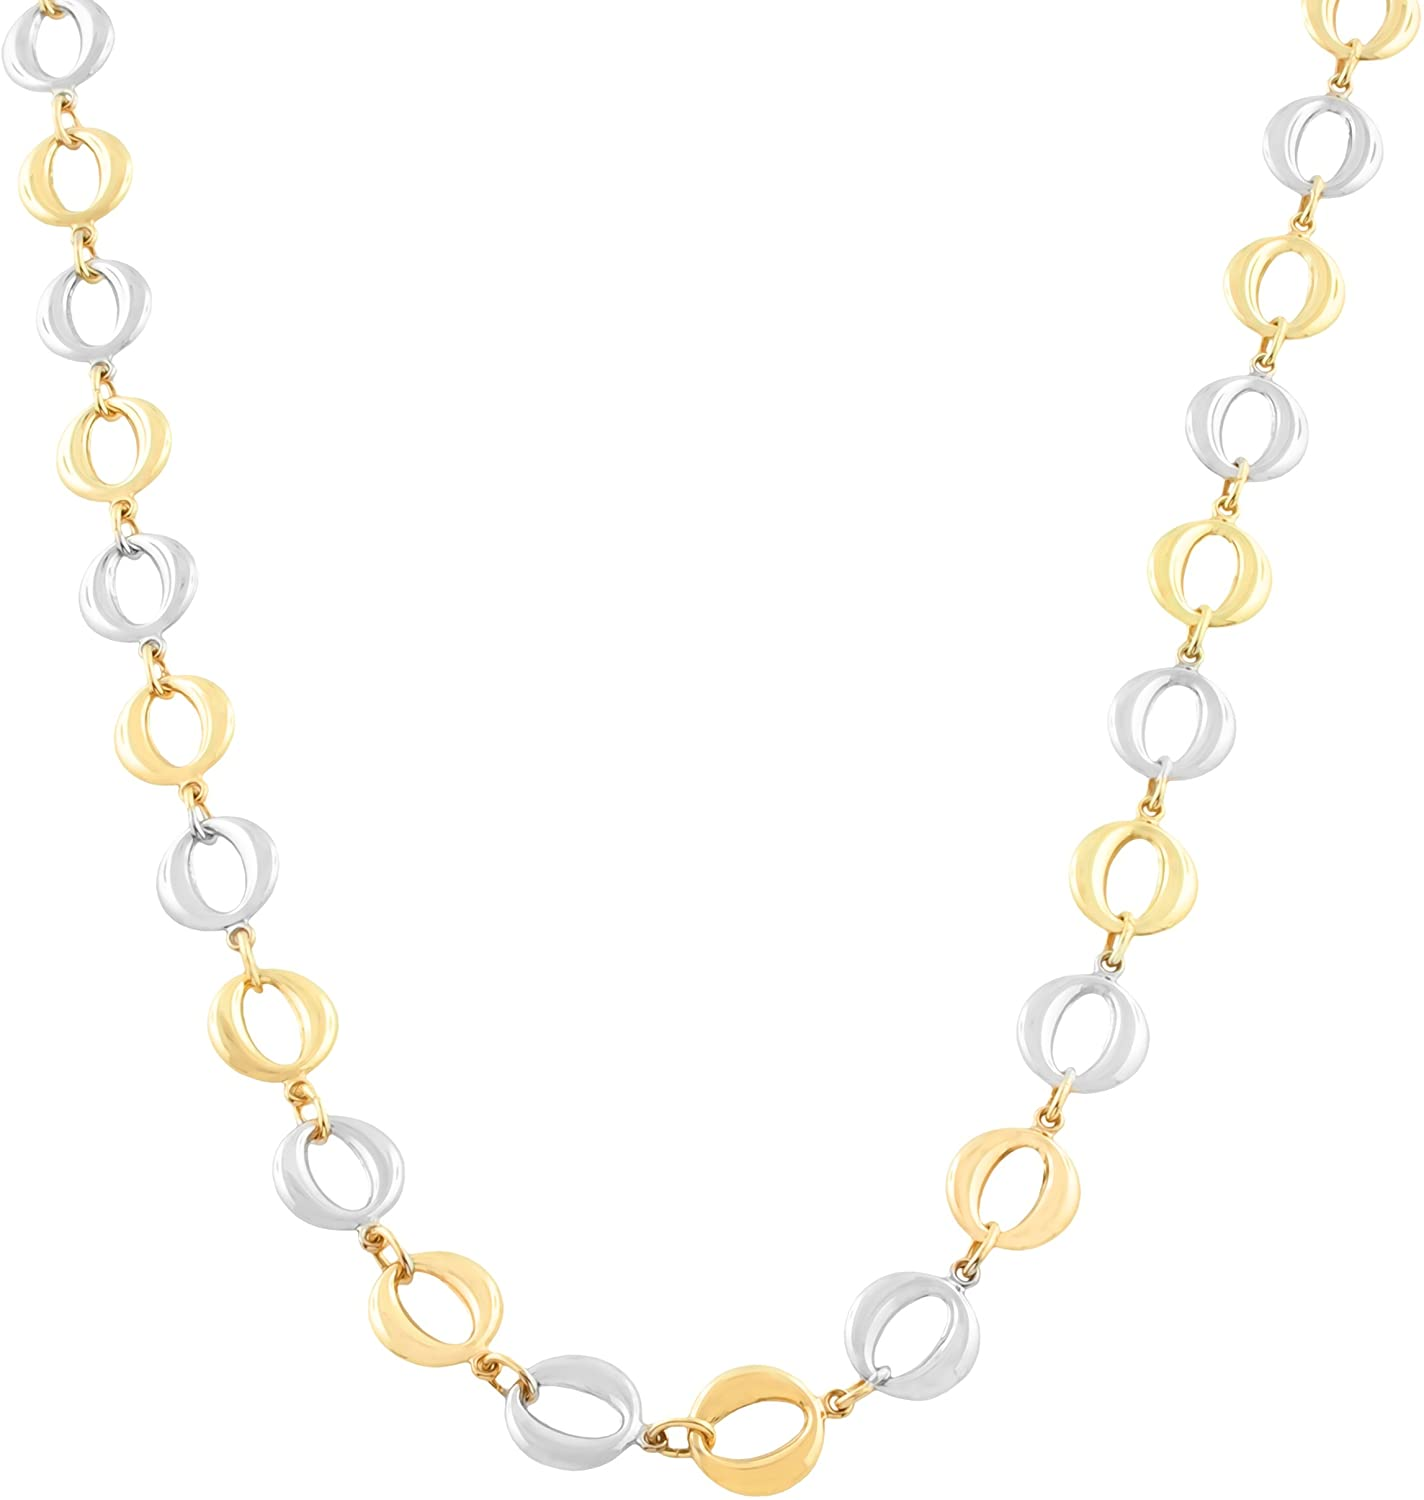 Kooljewelry 10k Two-Tone Gold Puffed Circle Necklace (18 inch)